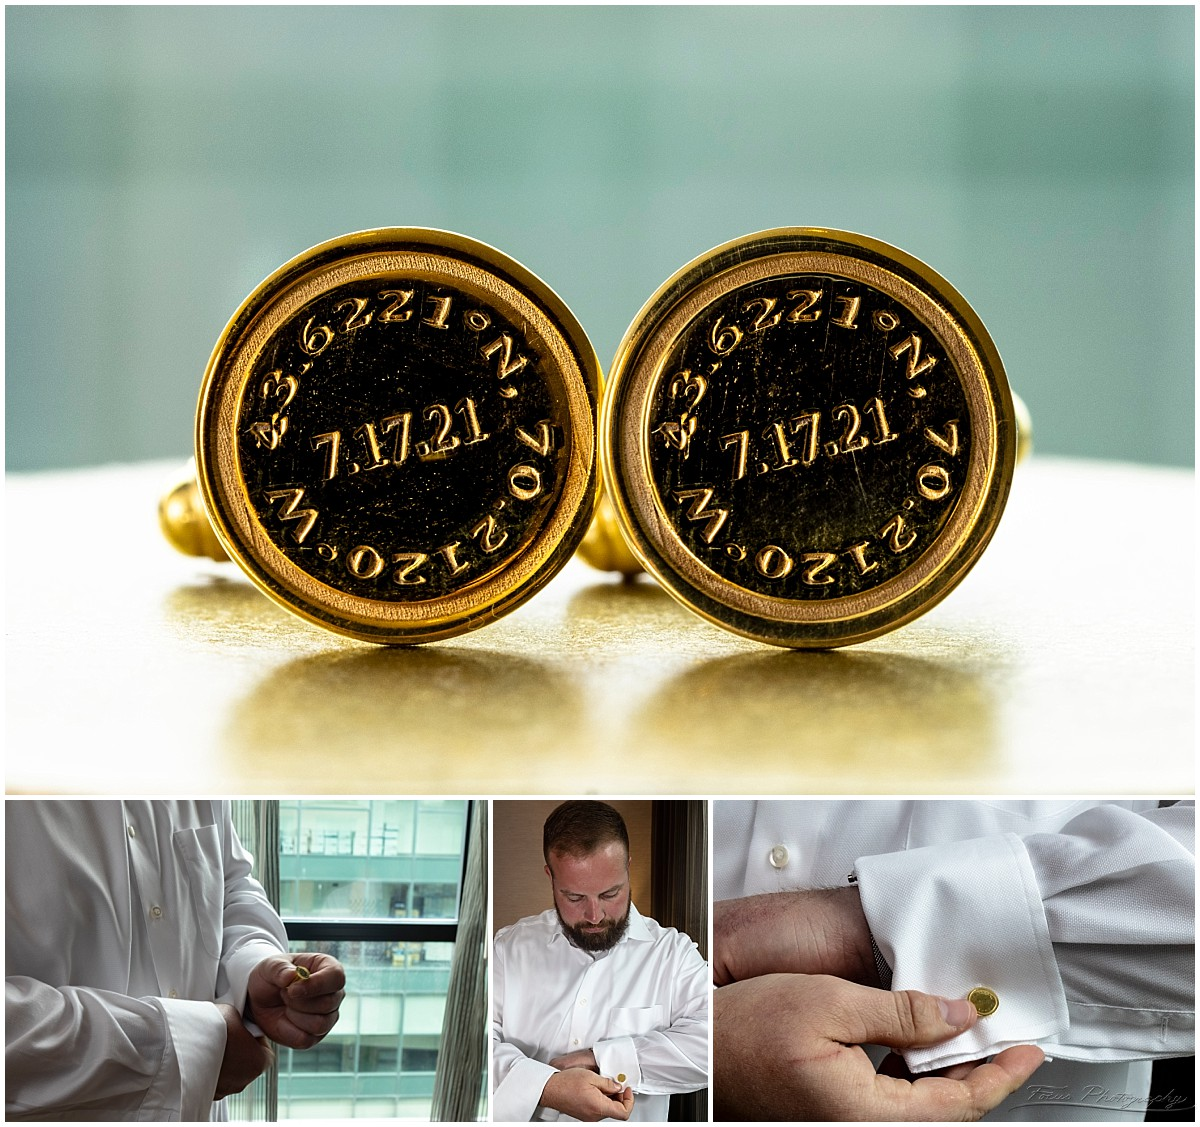 Sarah had these cuff links made for Craig  - super cool!